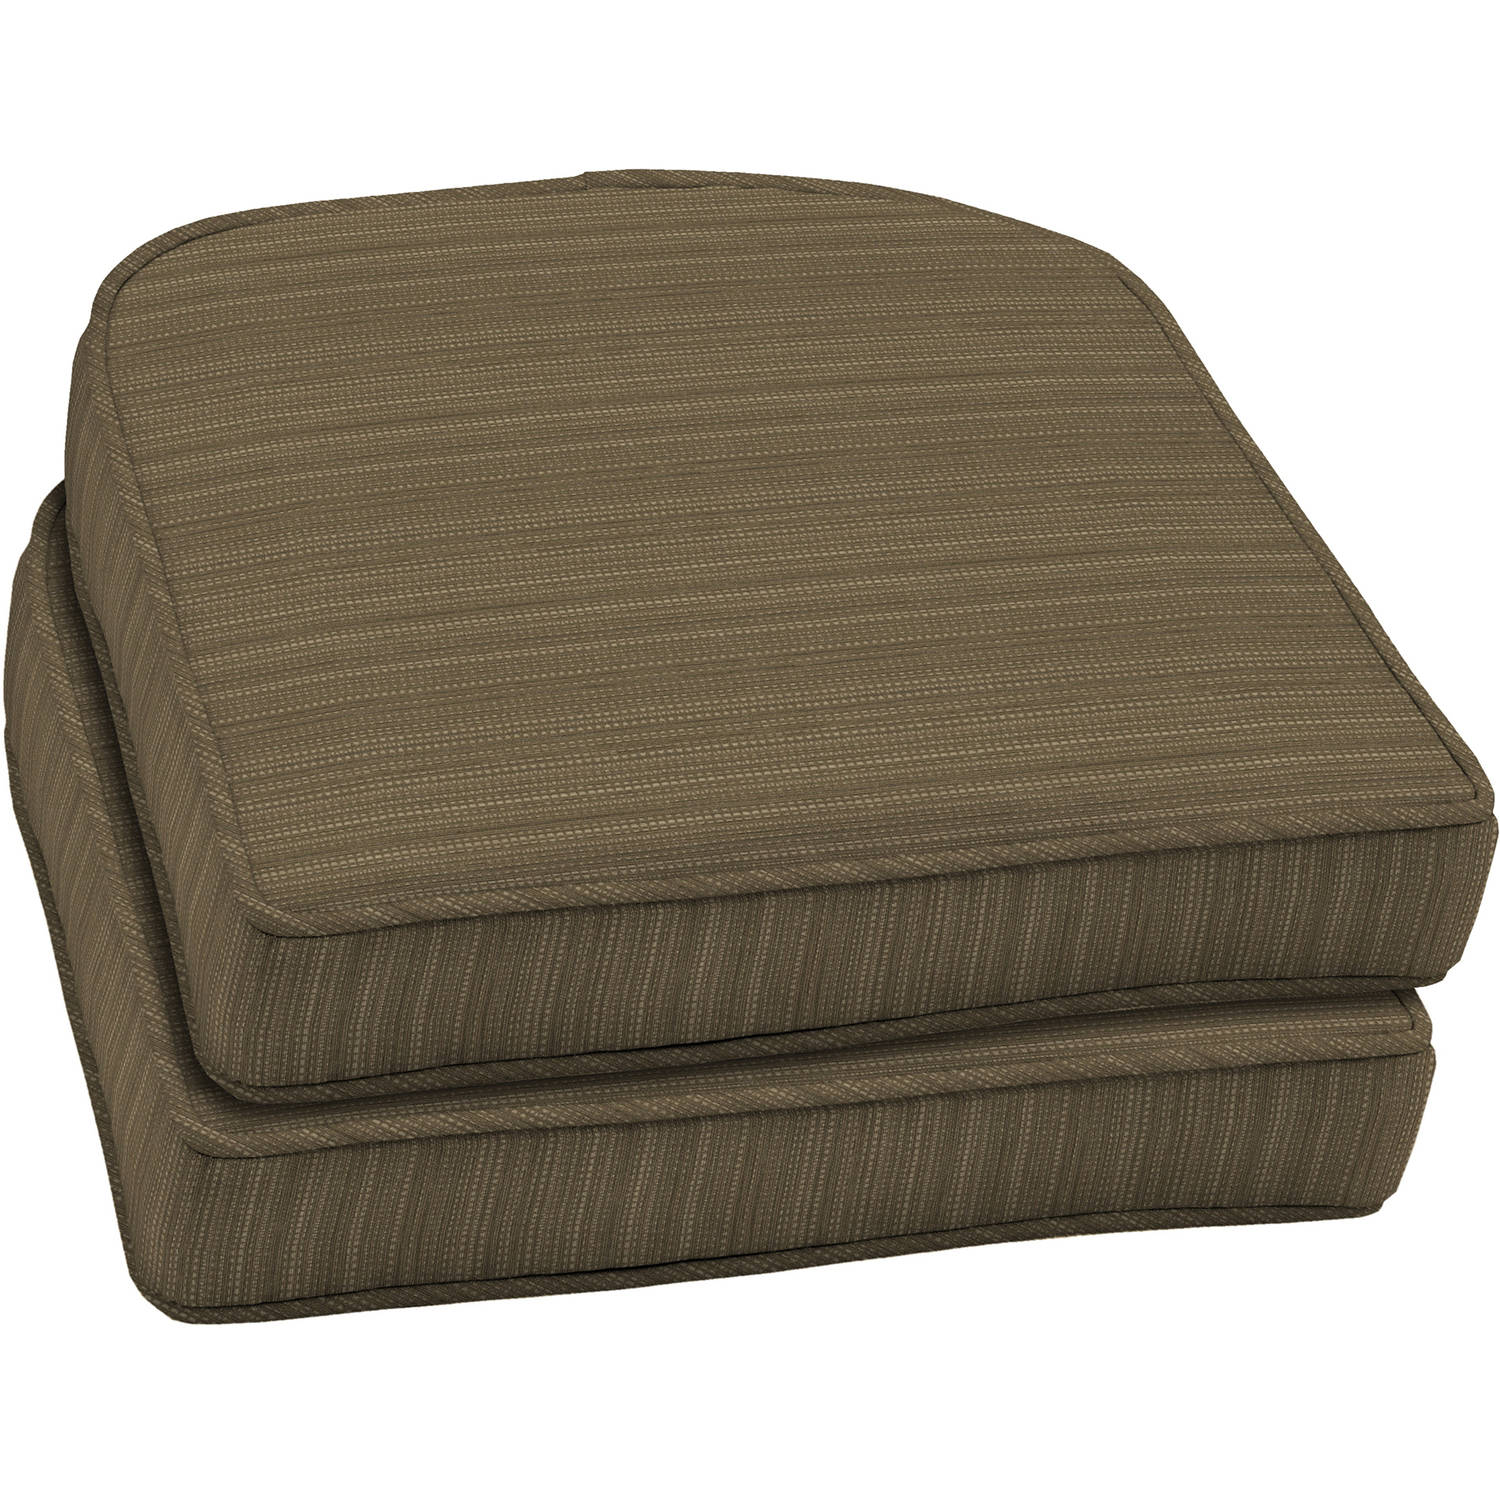 Bed chair pillow walmart - Bed Chair Pillow Walmart 9